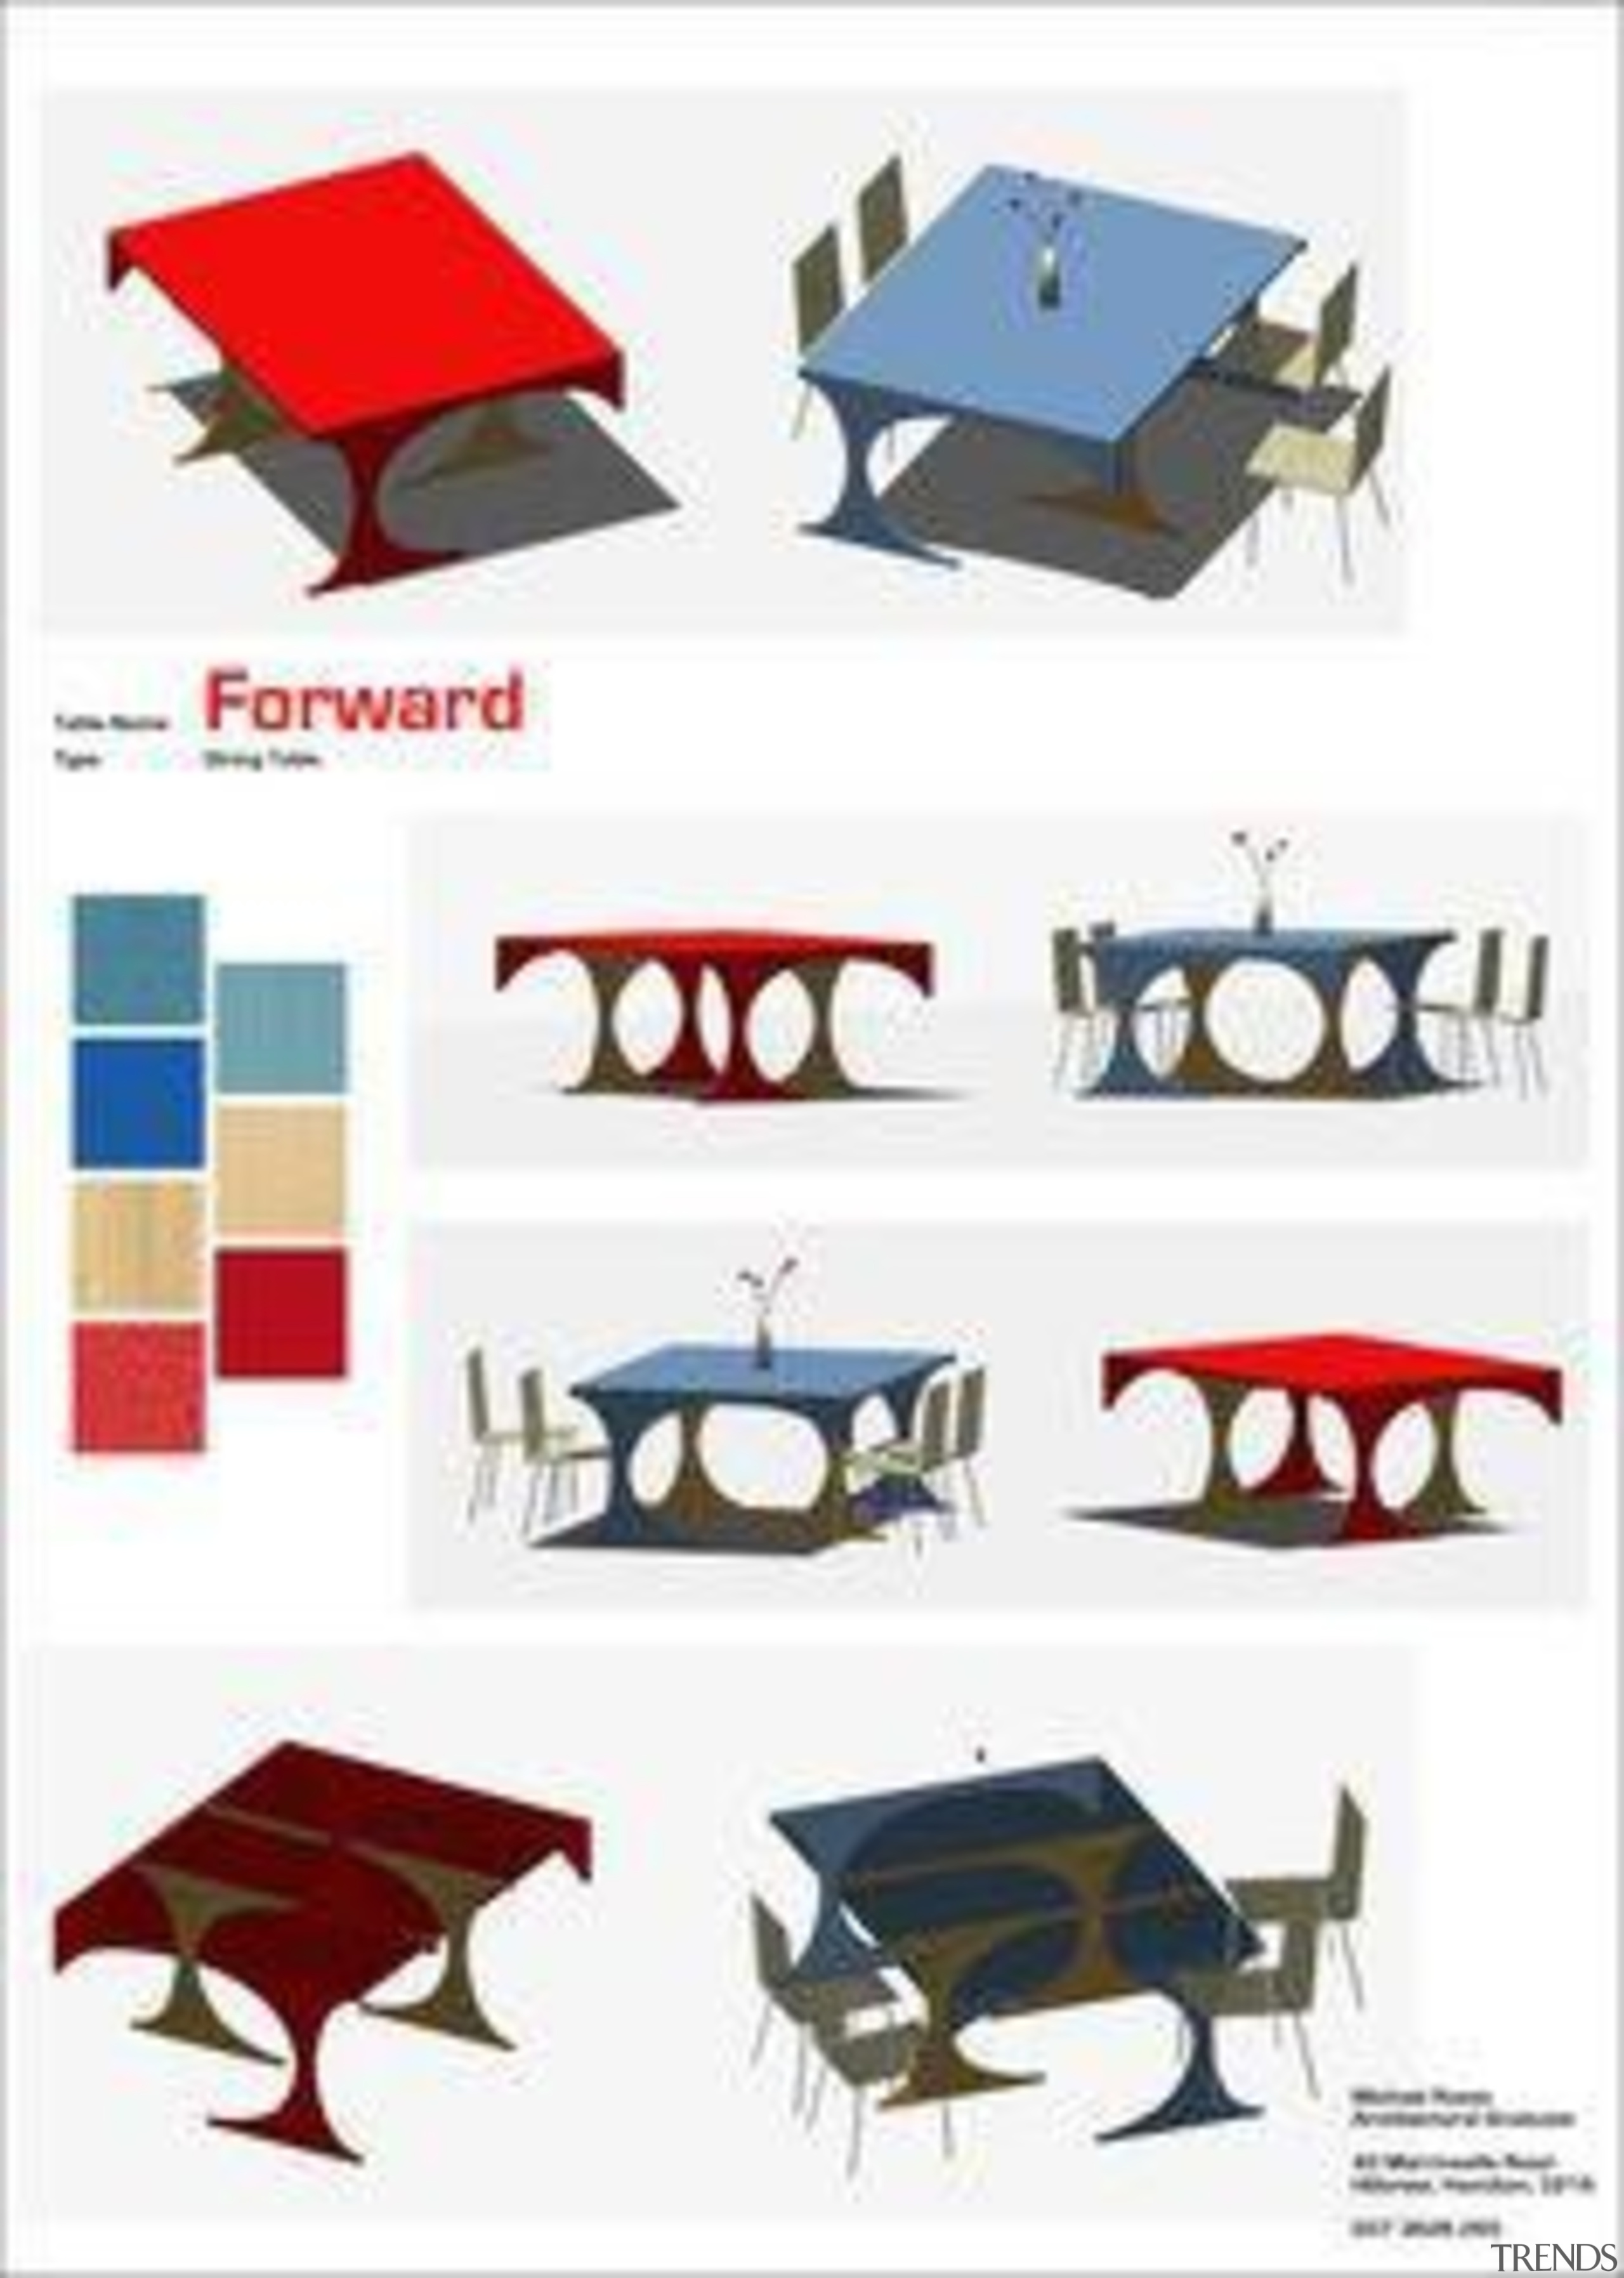 by Michael Russo - by Michael Russo - desk, font, furniture, line, outdoor furniture, product, product design, table, white